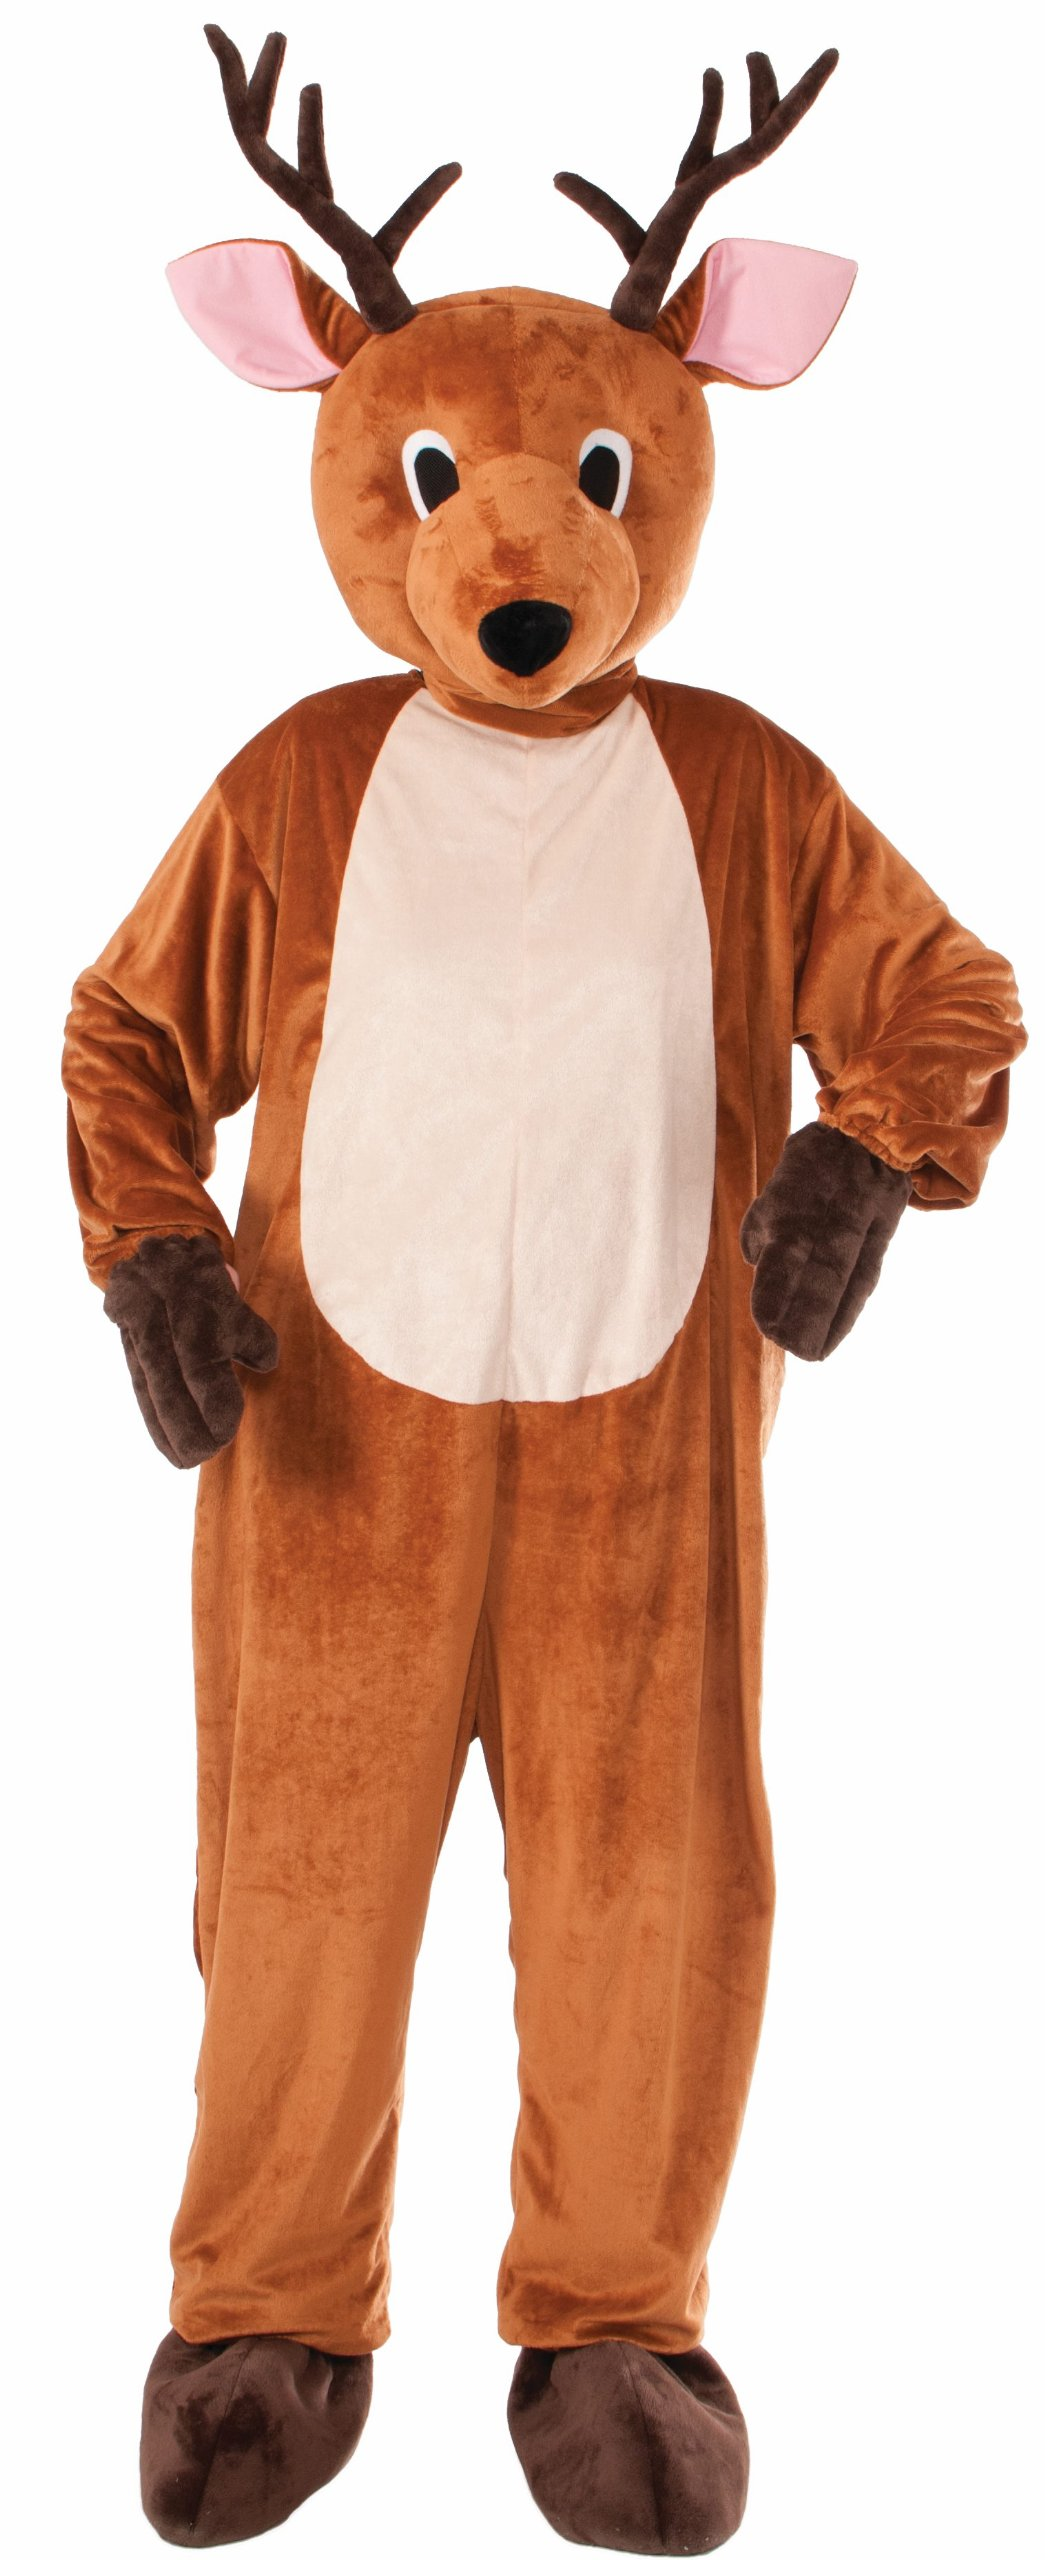 Forum Novelties Men's Reindeer Plush Mascot Costume, Brown, One Size(Fits up to Chest size 42) by Forum Novelties